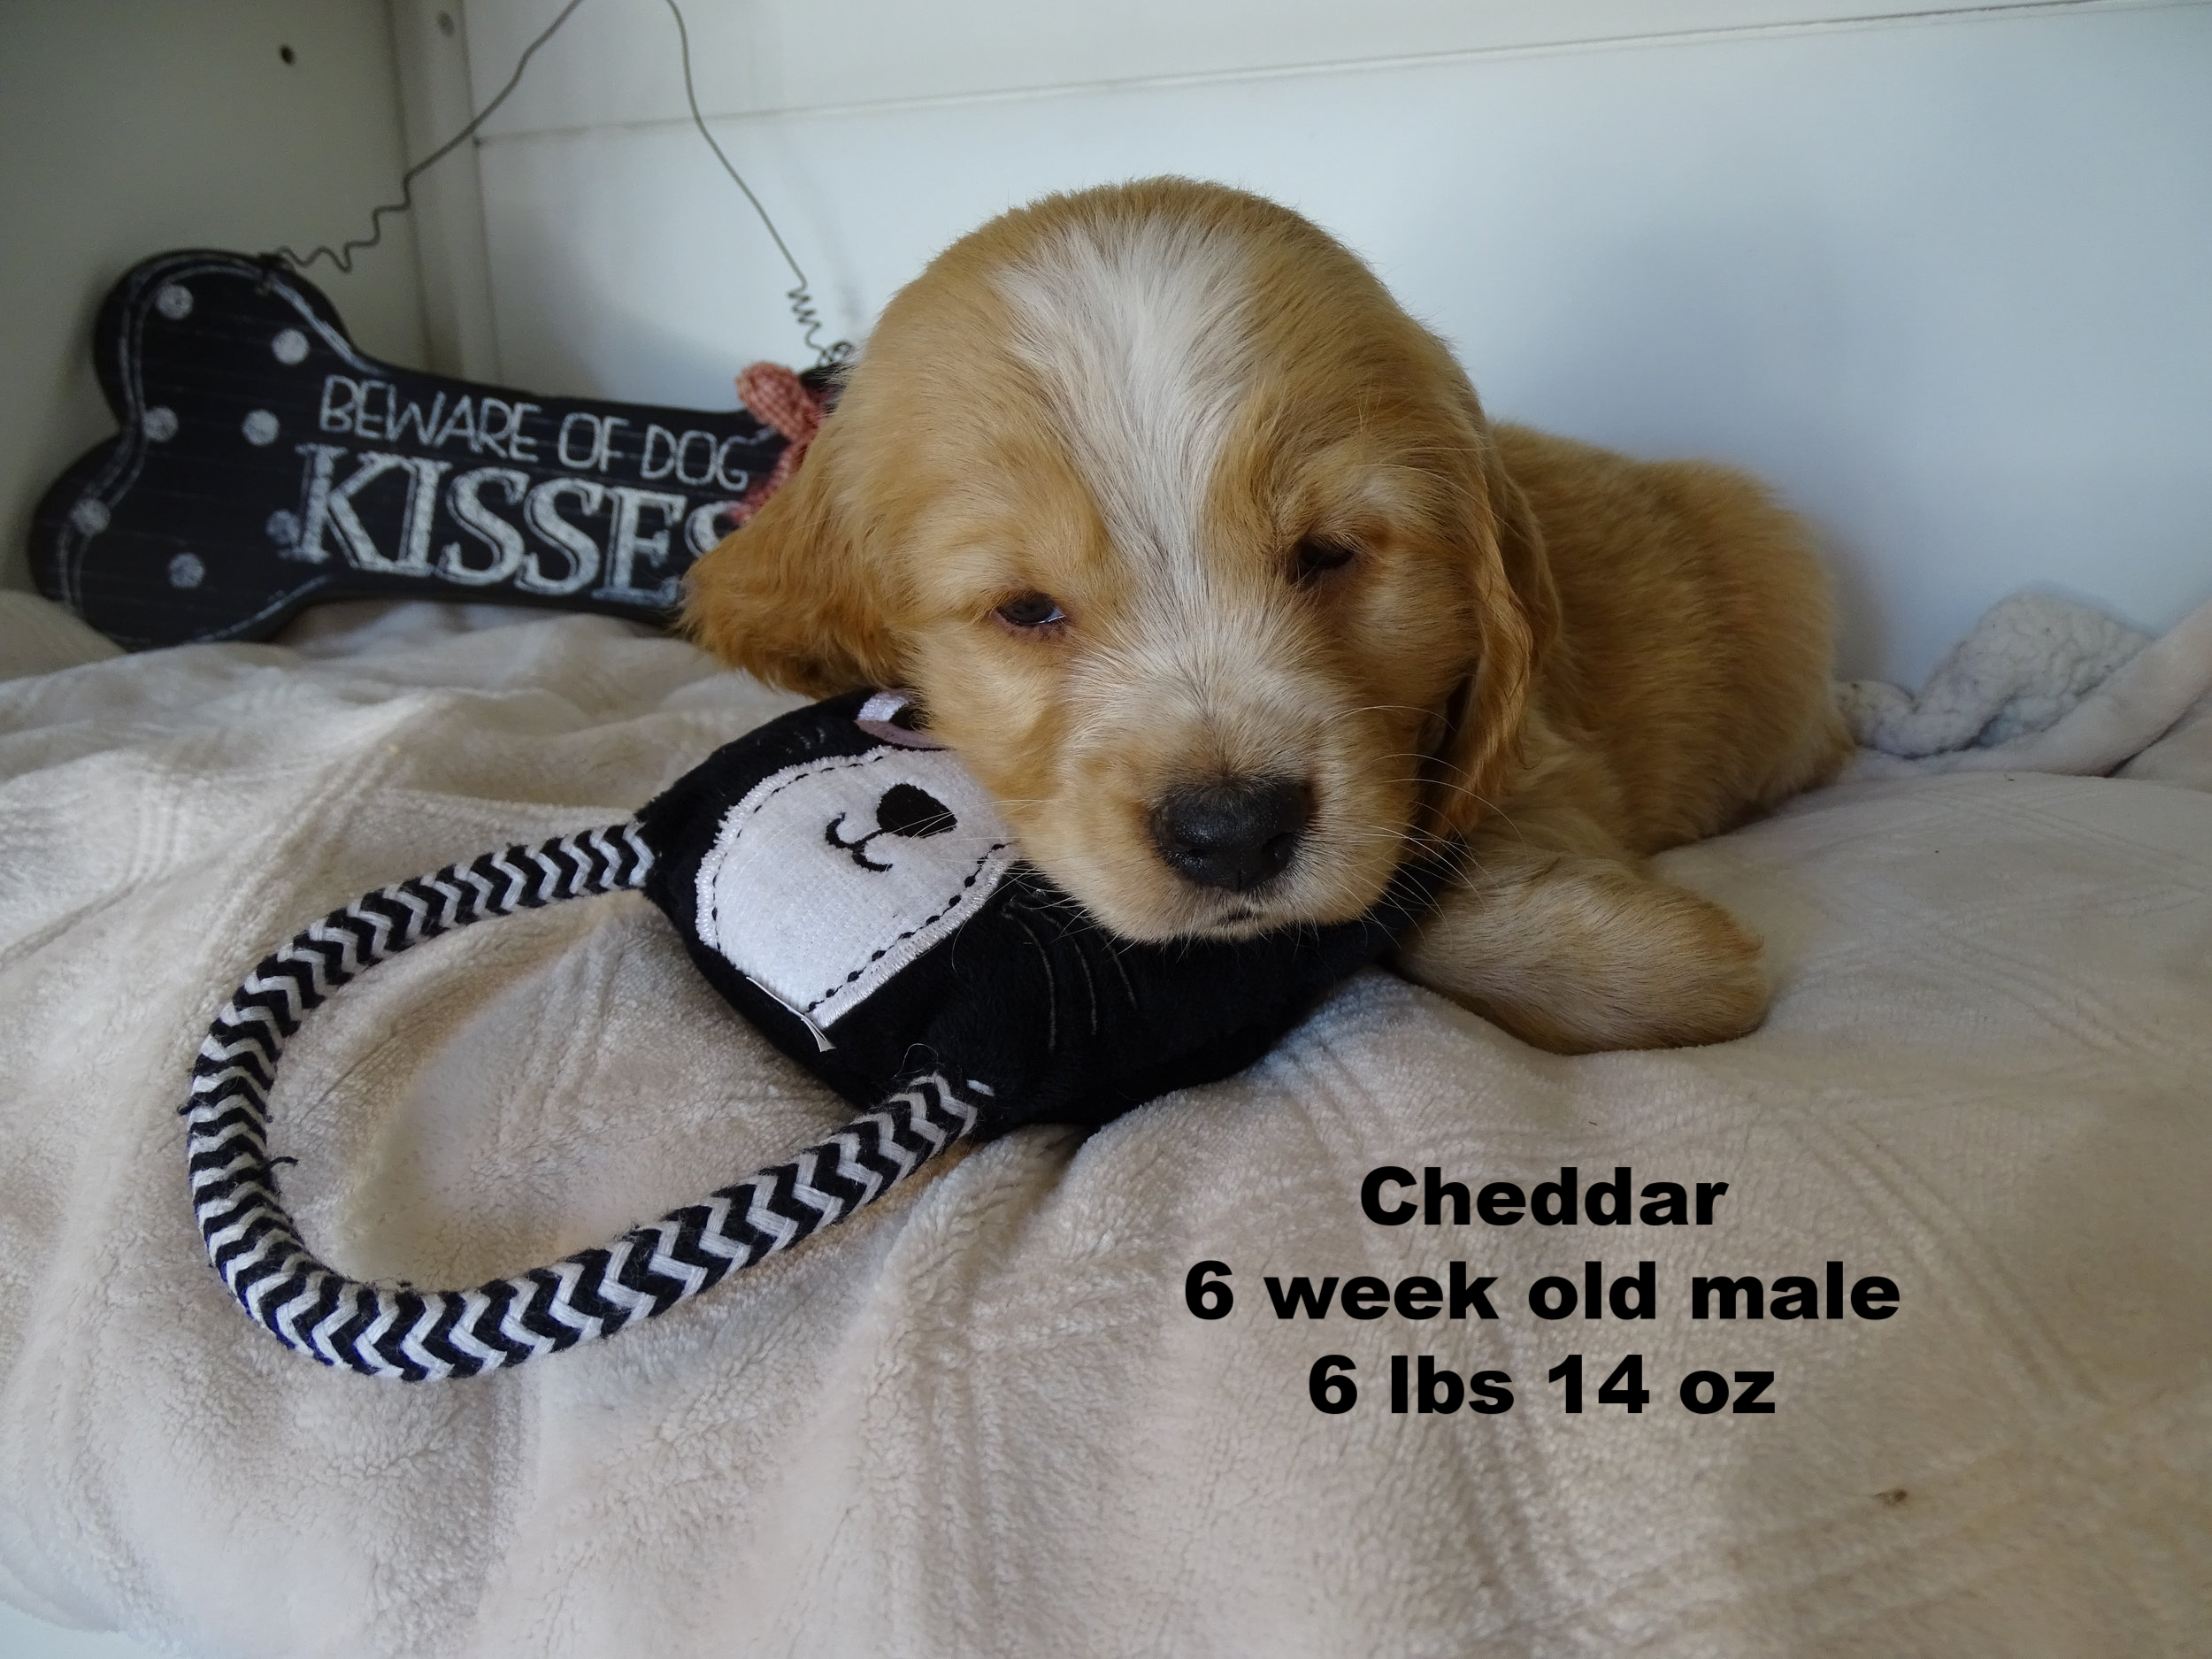 Cheddar and Cora are our last available puppies! They are so sweet and have a wonderful temperament. -